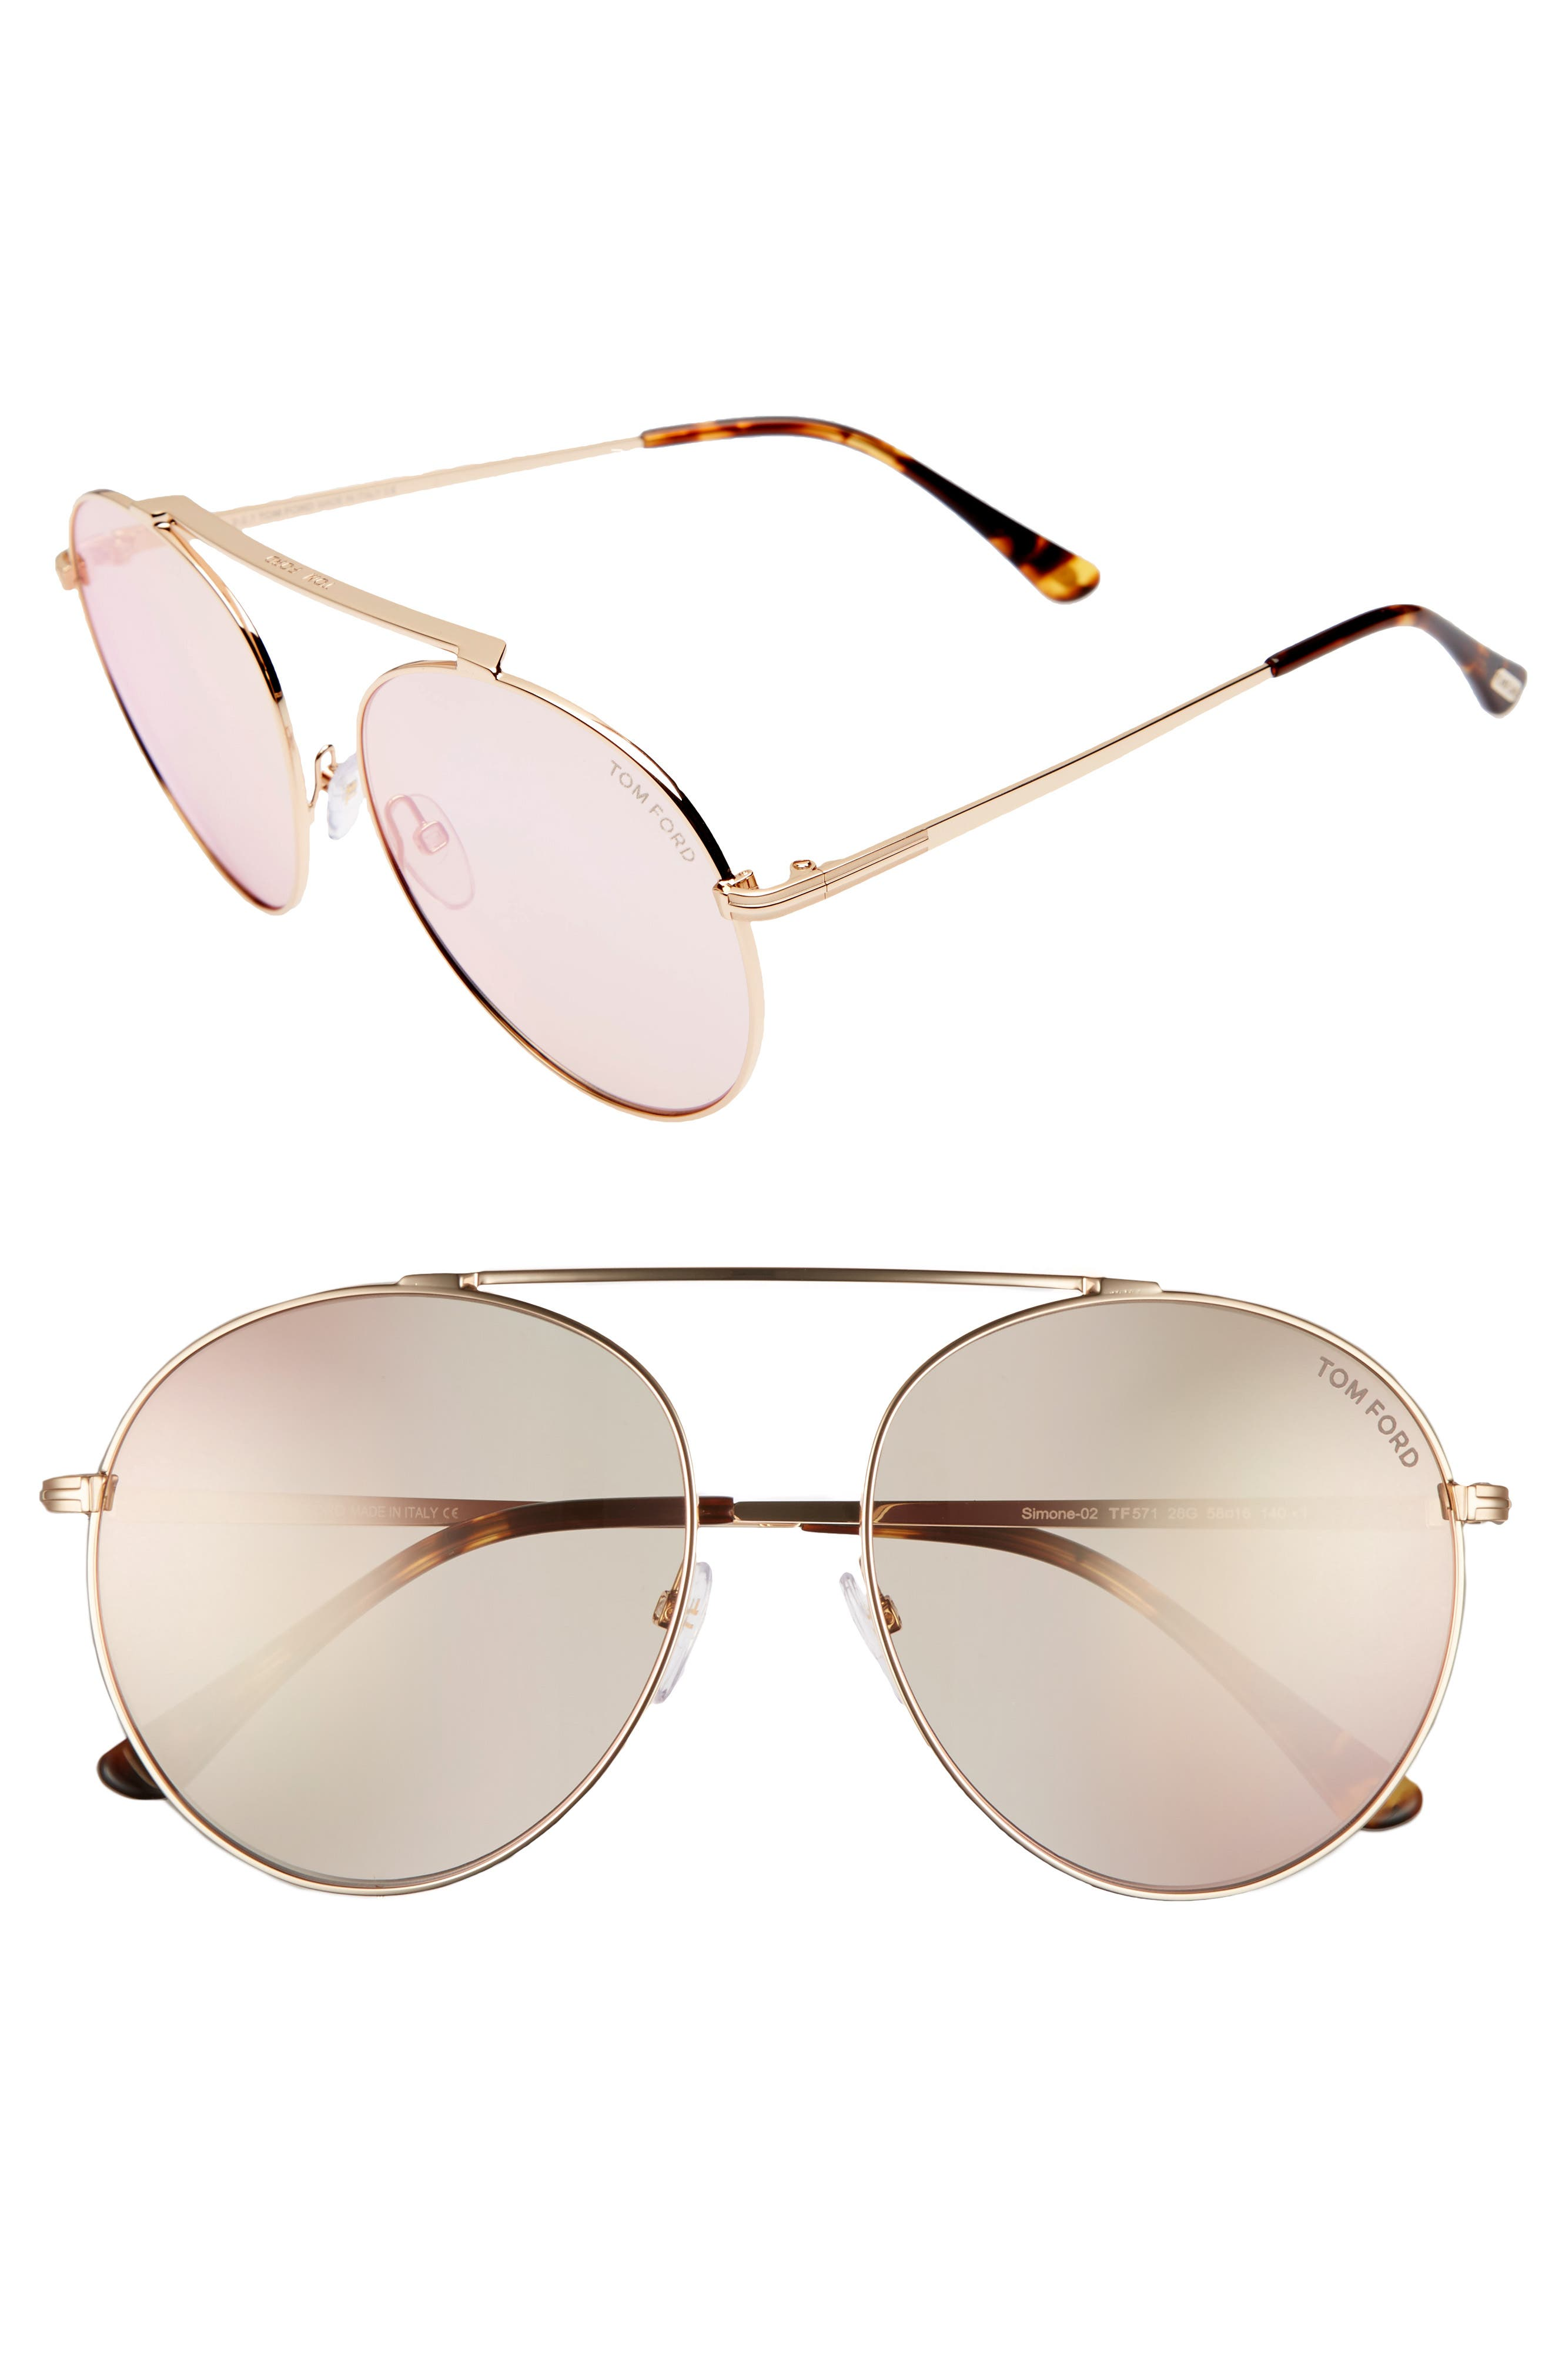 Simone 58mm Gradient Mirrored Round Sunglasses,                         Main,                         color, Rose Gold/ Light Brown Flash